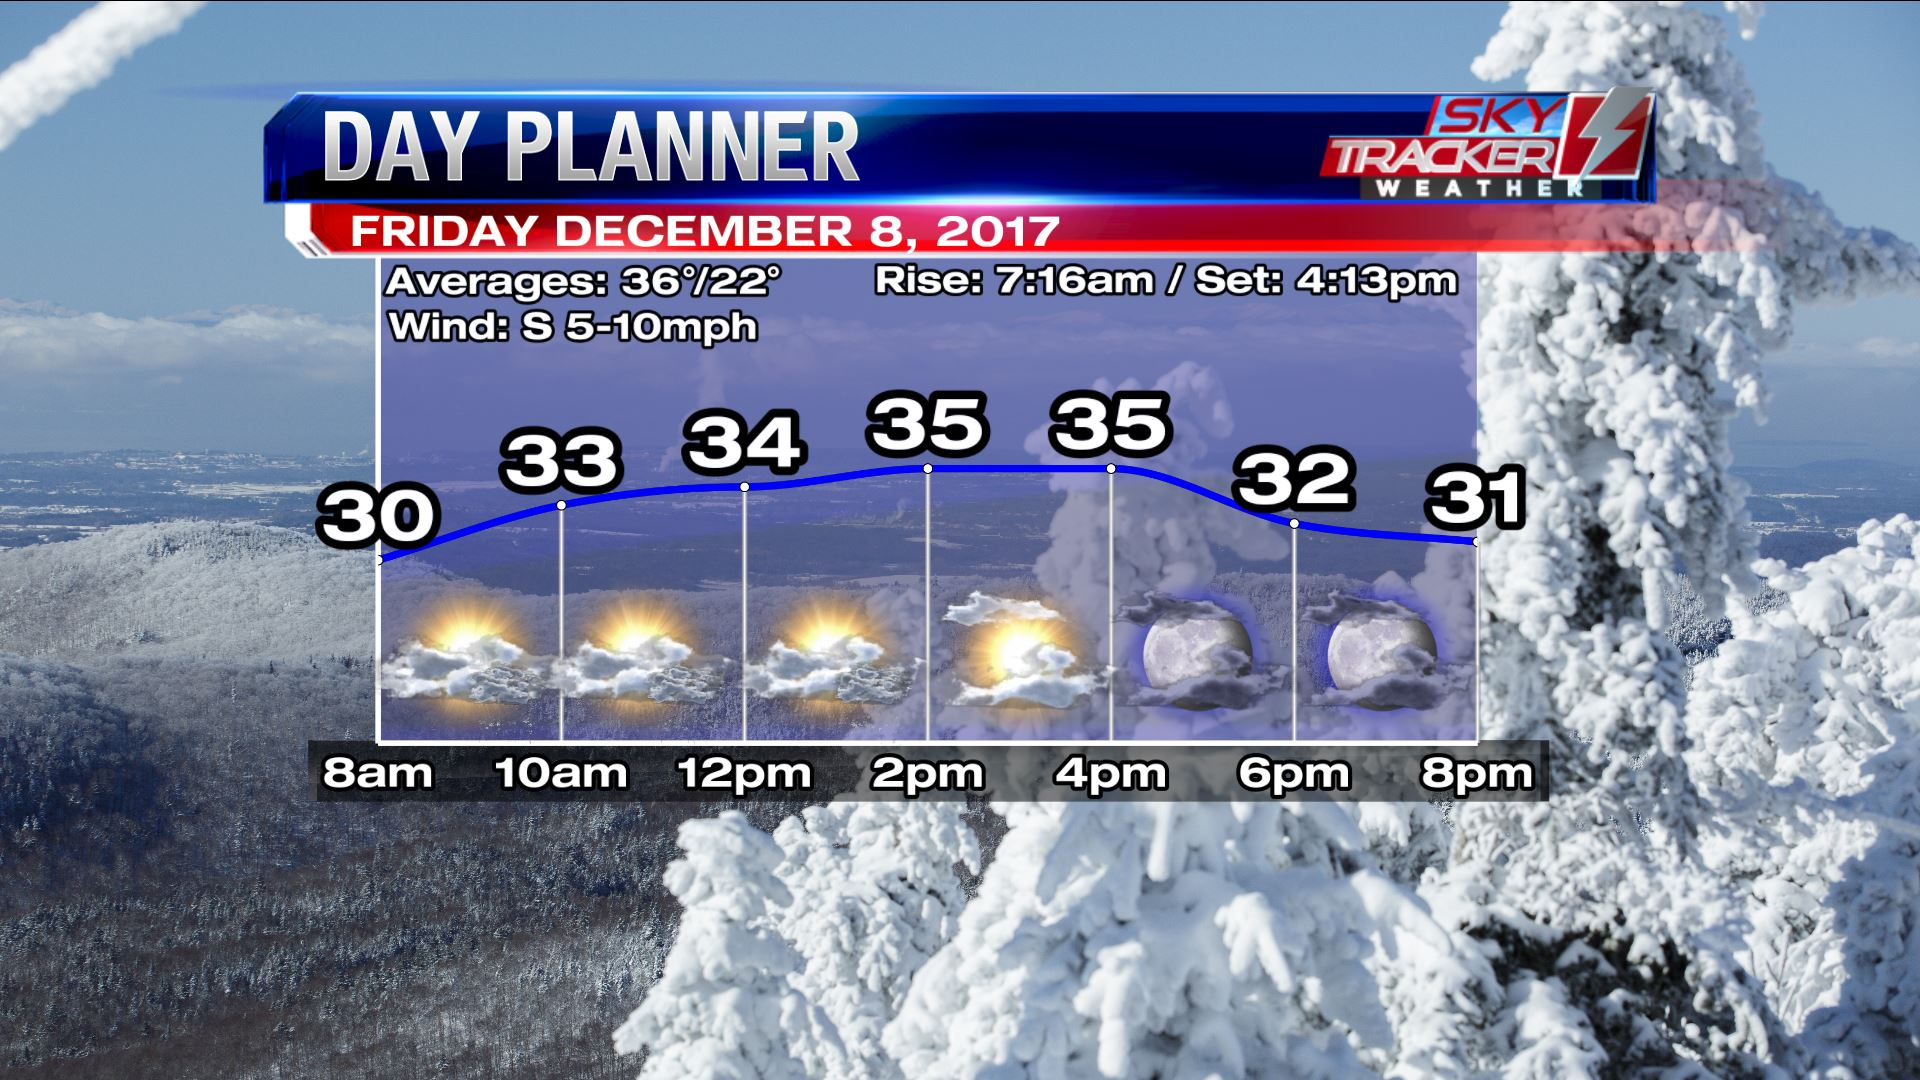 Planner for Friday December 8 2017